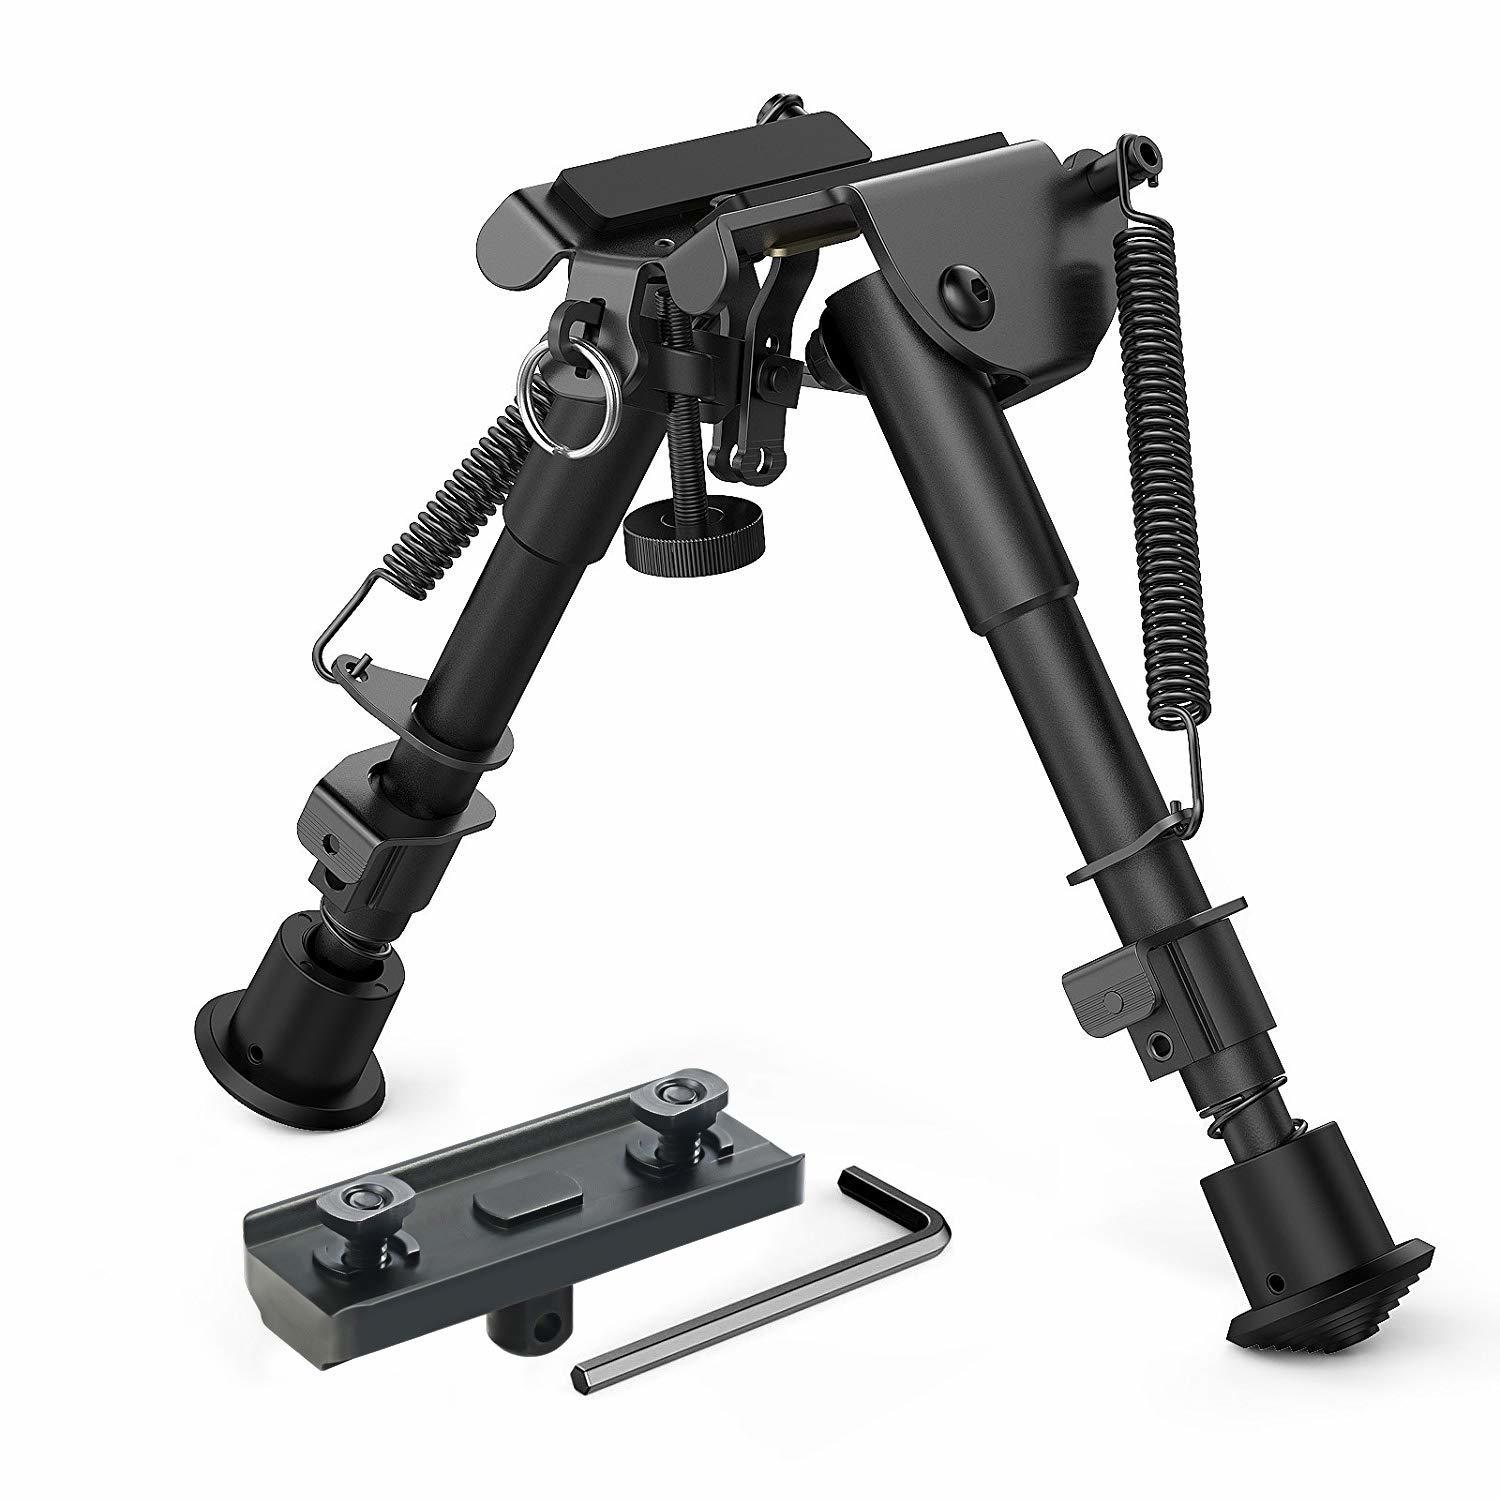 XAegis 2 in 1 Bipod